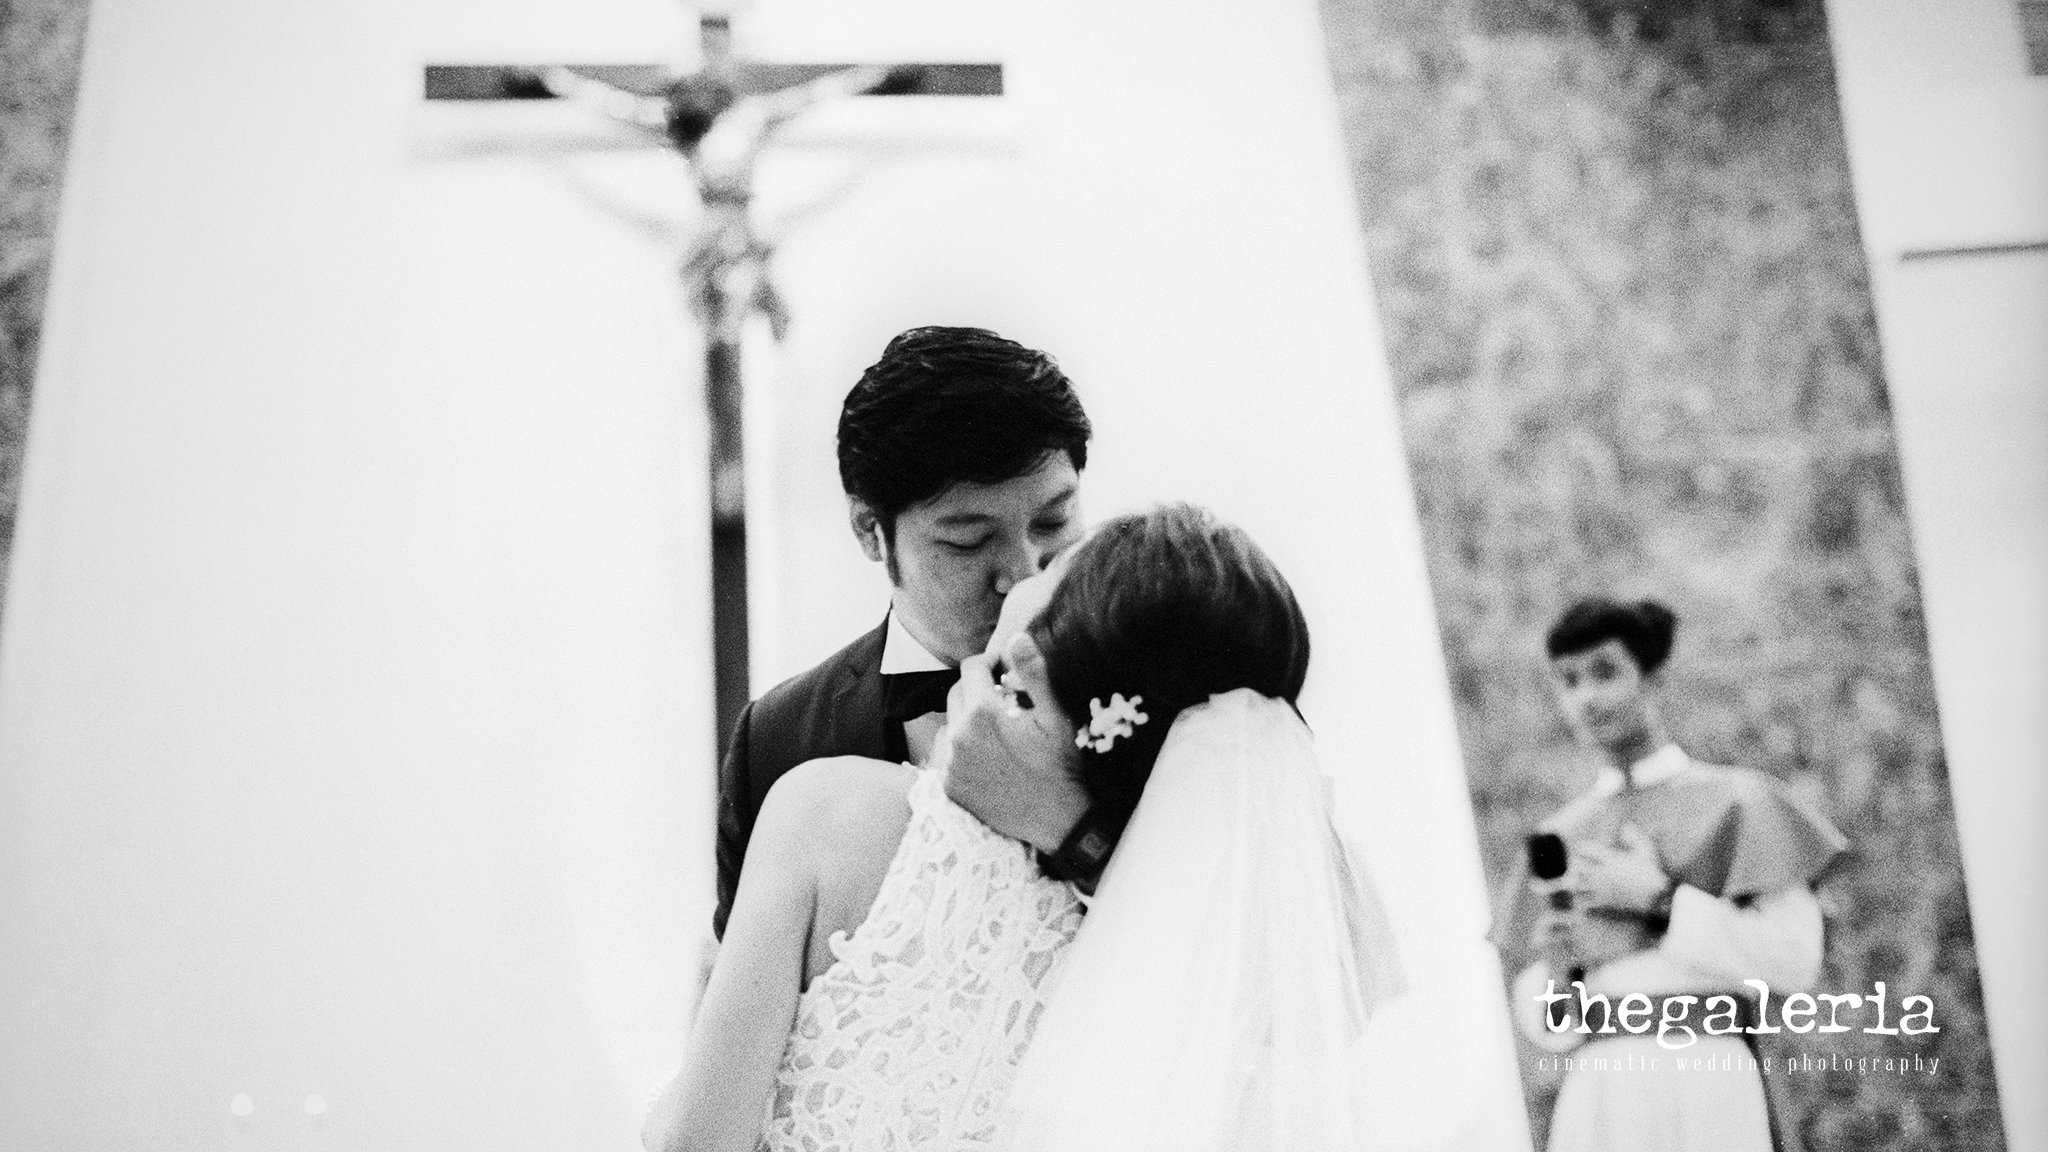 Film Wedding Photography by Brian Ho / thegaleria. Kodak TRI-X / pushed +1 stop